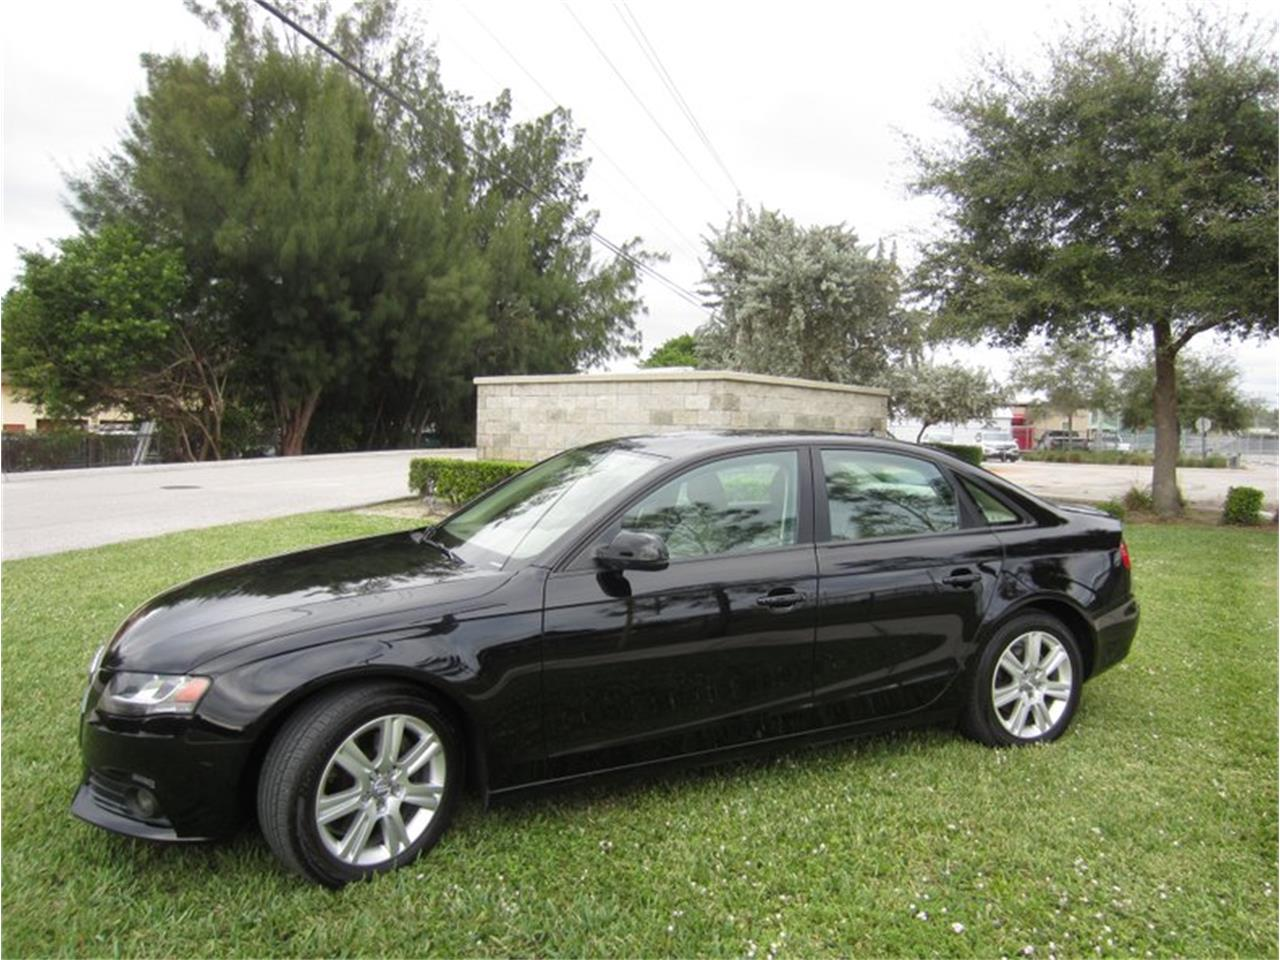 2010 Audi A4 (CC-1321042) for sale in Punta Gorda, Florida